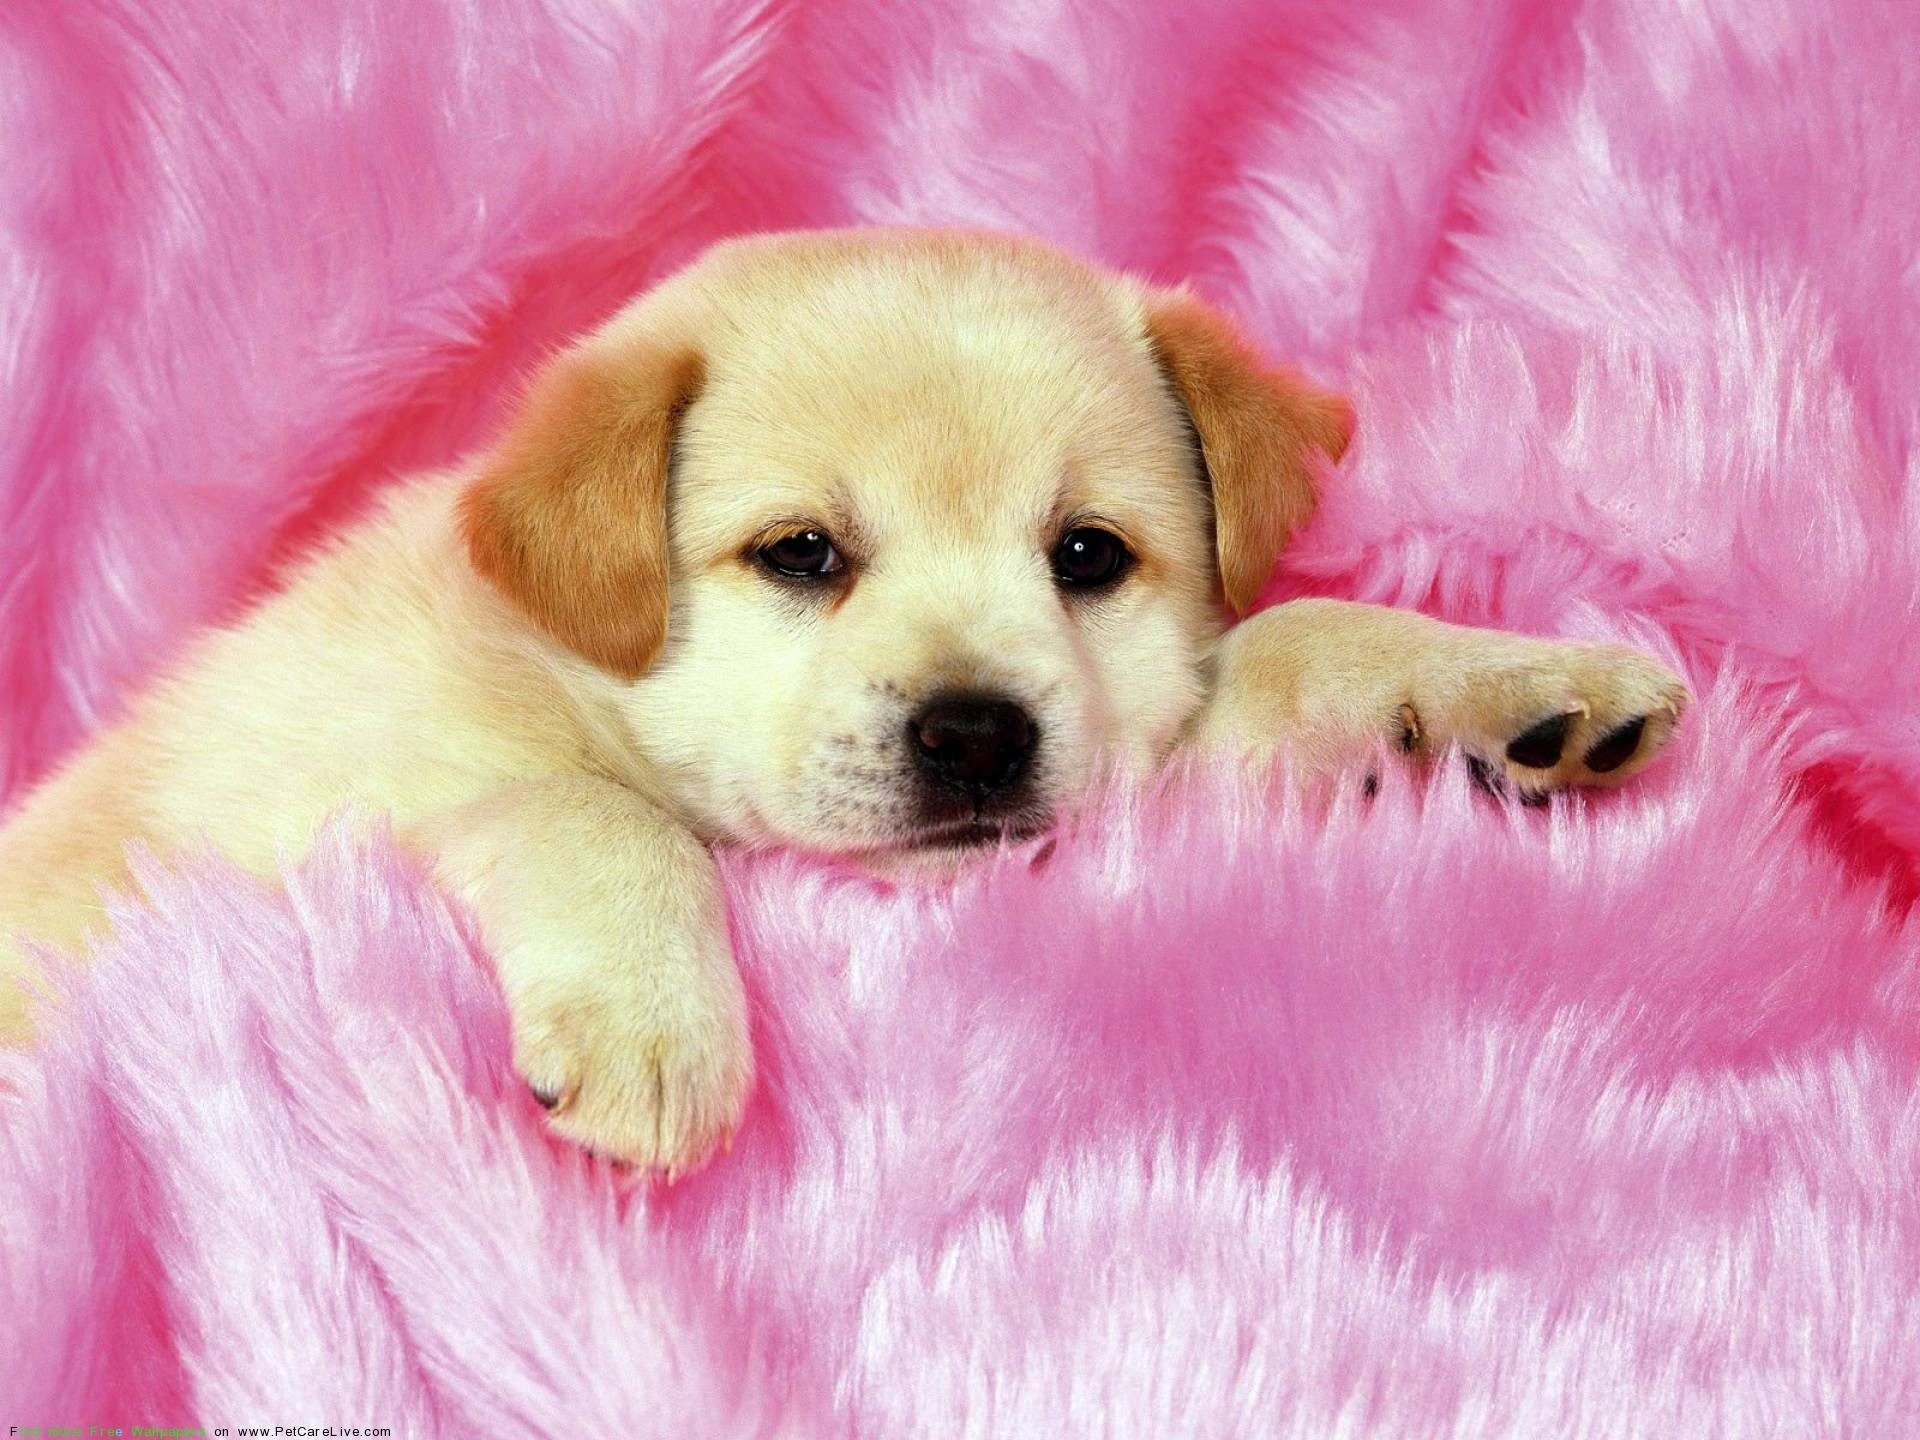 Puppies And Kittens Wallpaper ·① WallpaperTag